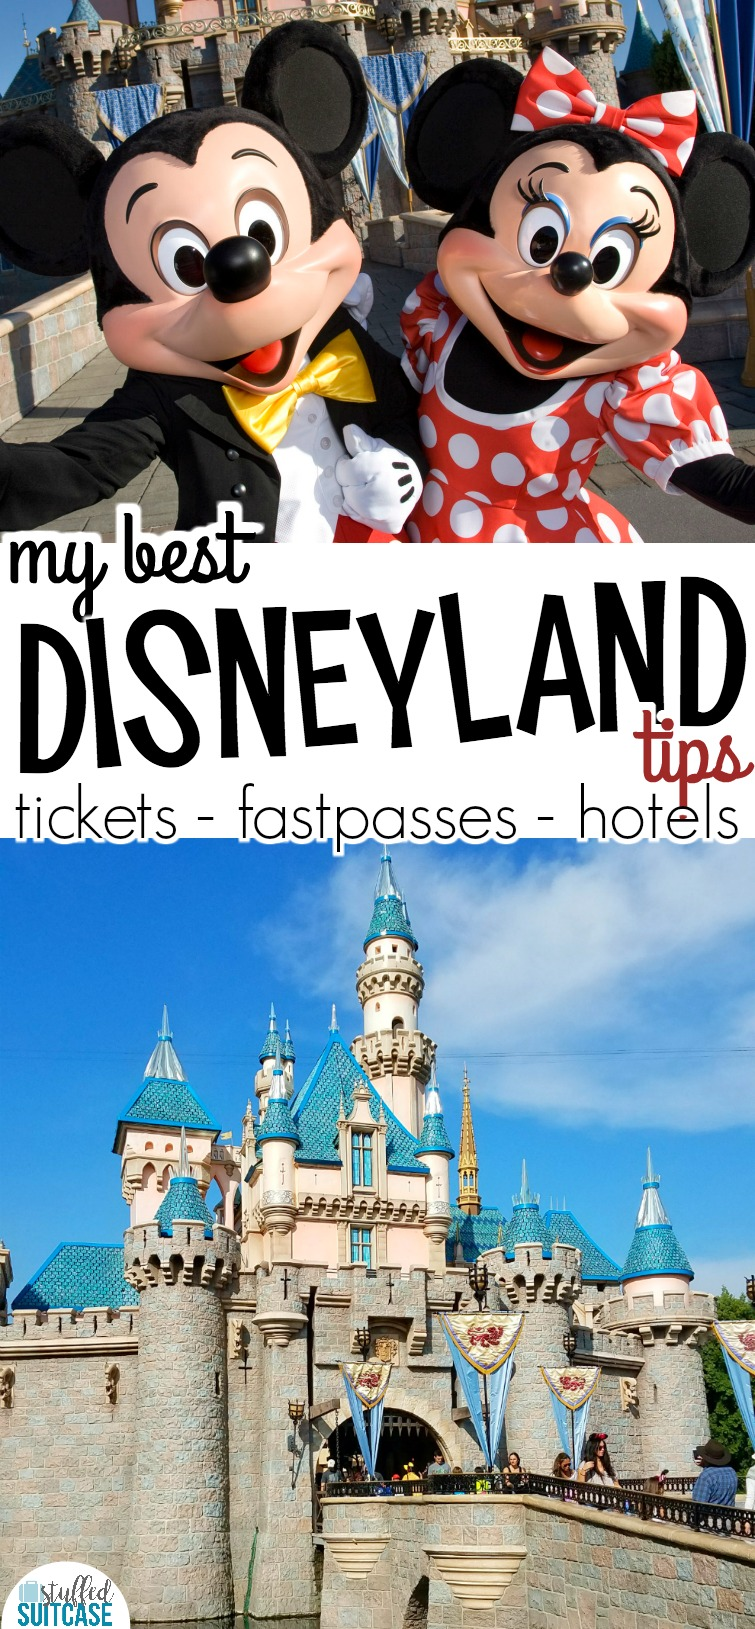 Looking for some Disneyland secrets? Here are my best Disneyland tips to help you plan a magical vacation!